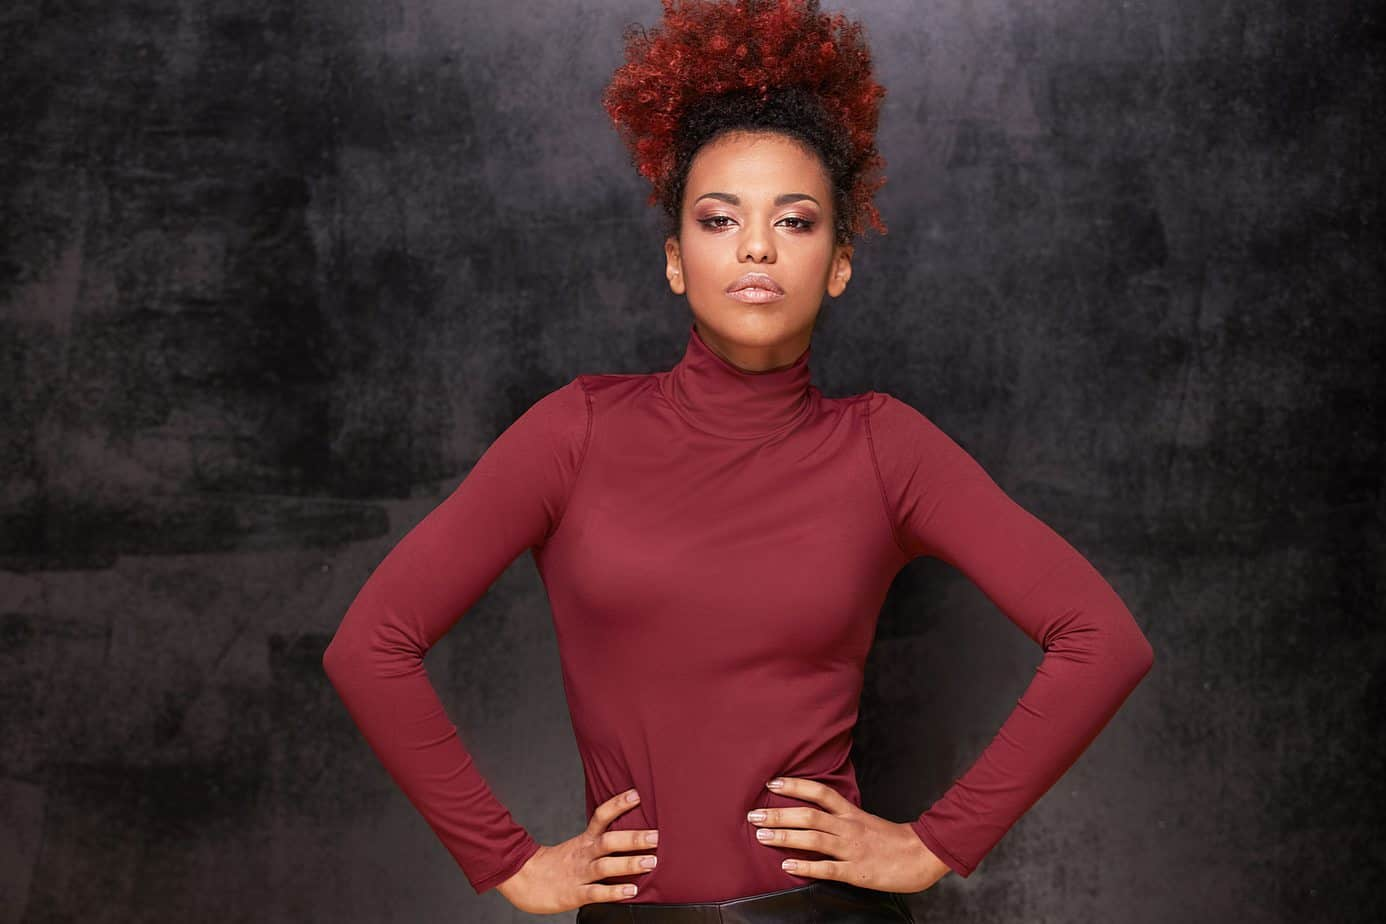 Black women with curly red hair with hands on her hips wearing a red mock turtle neck.